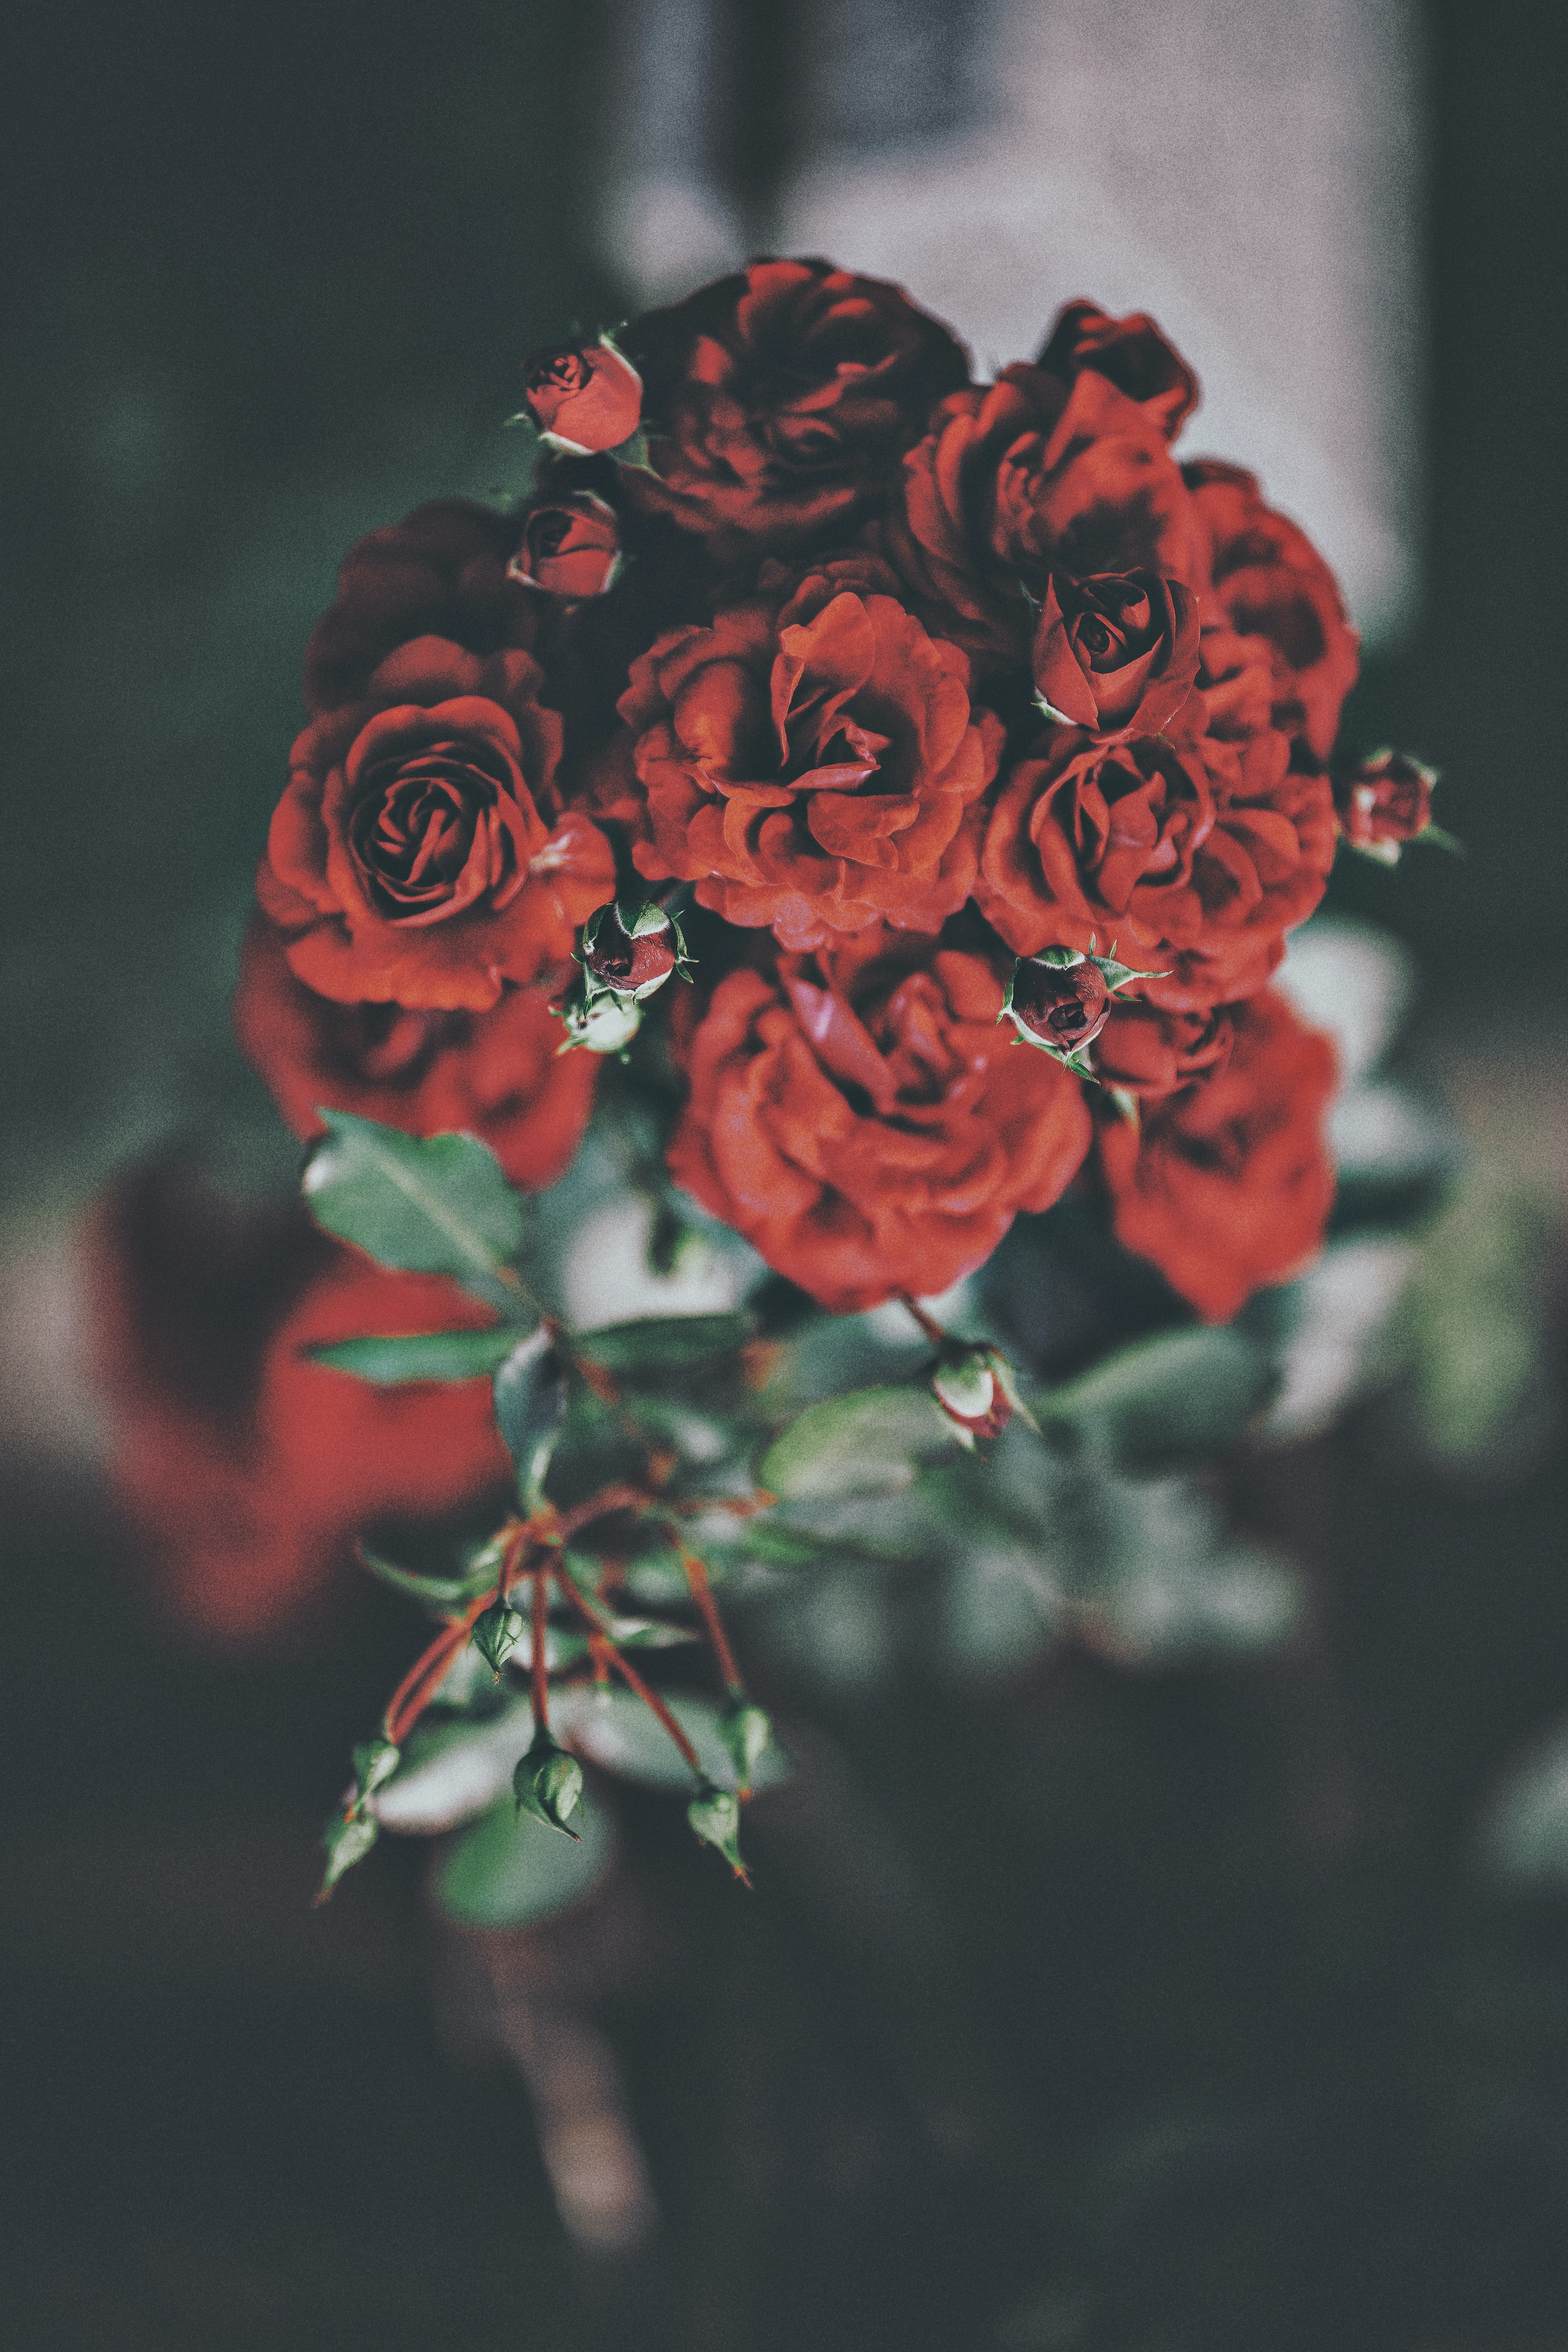 red roses in selective focus photography